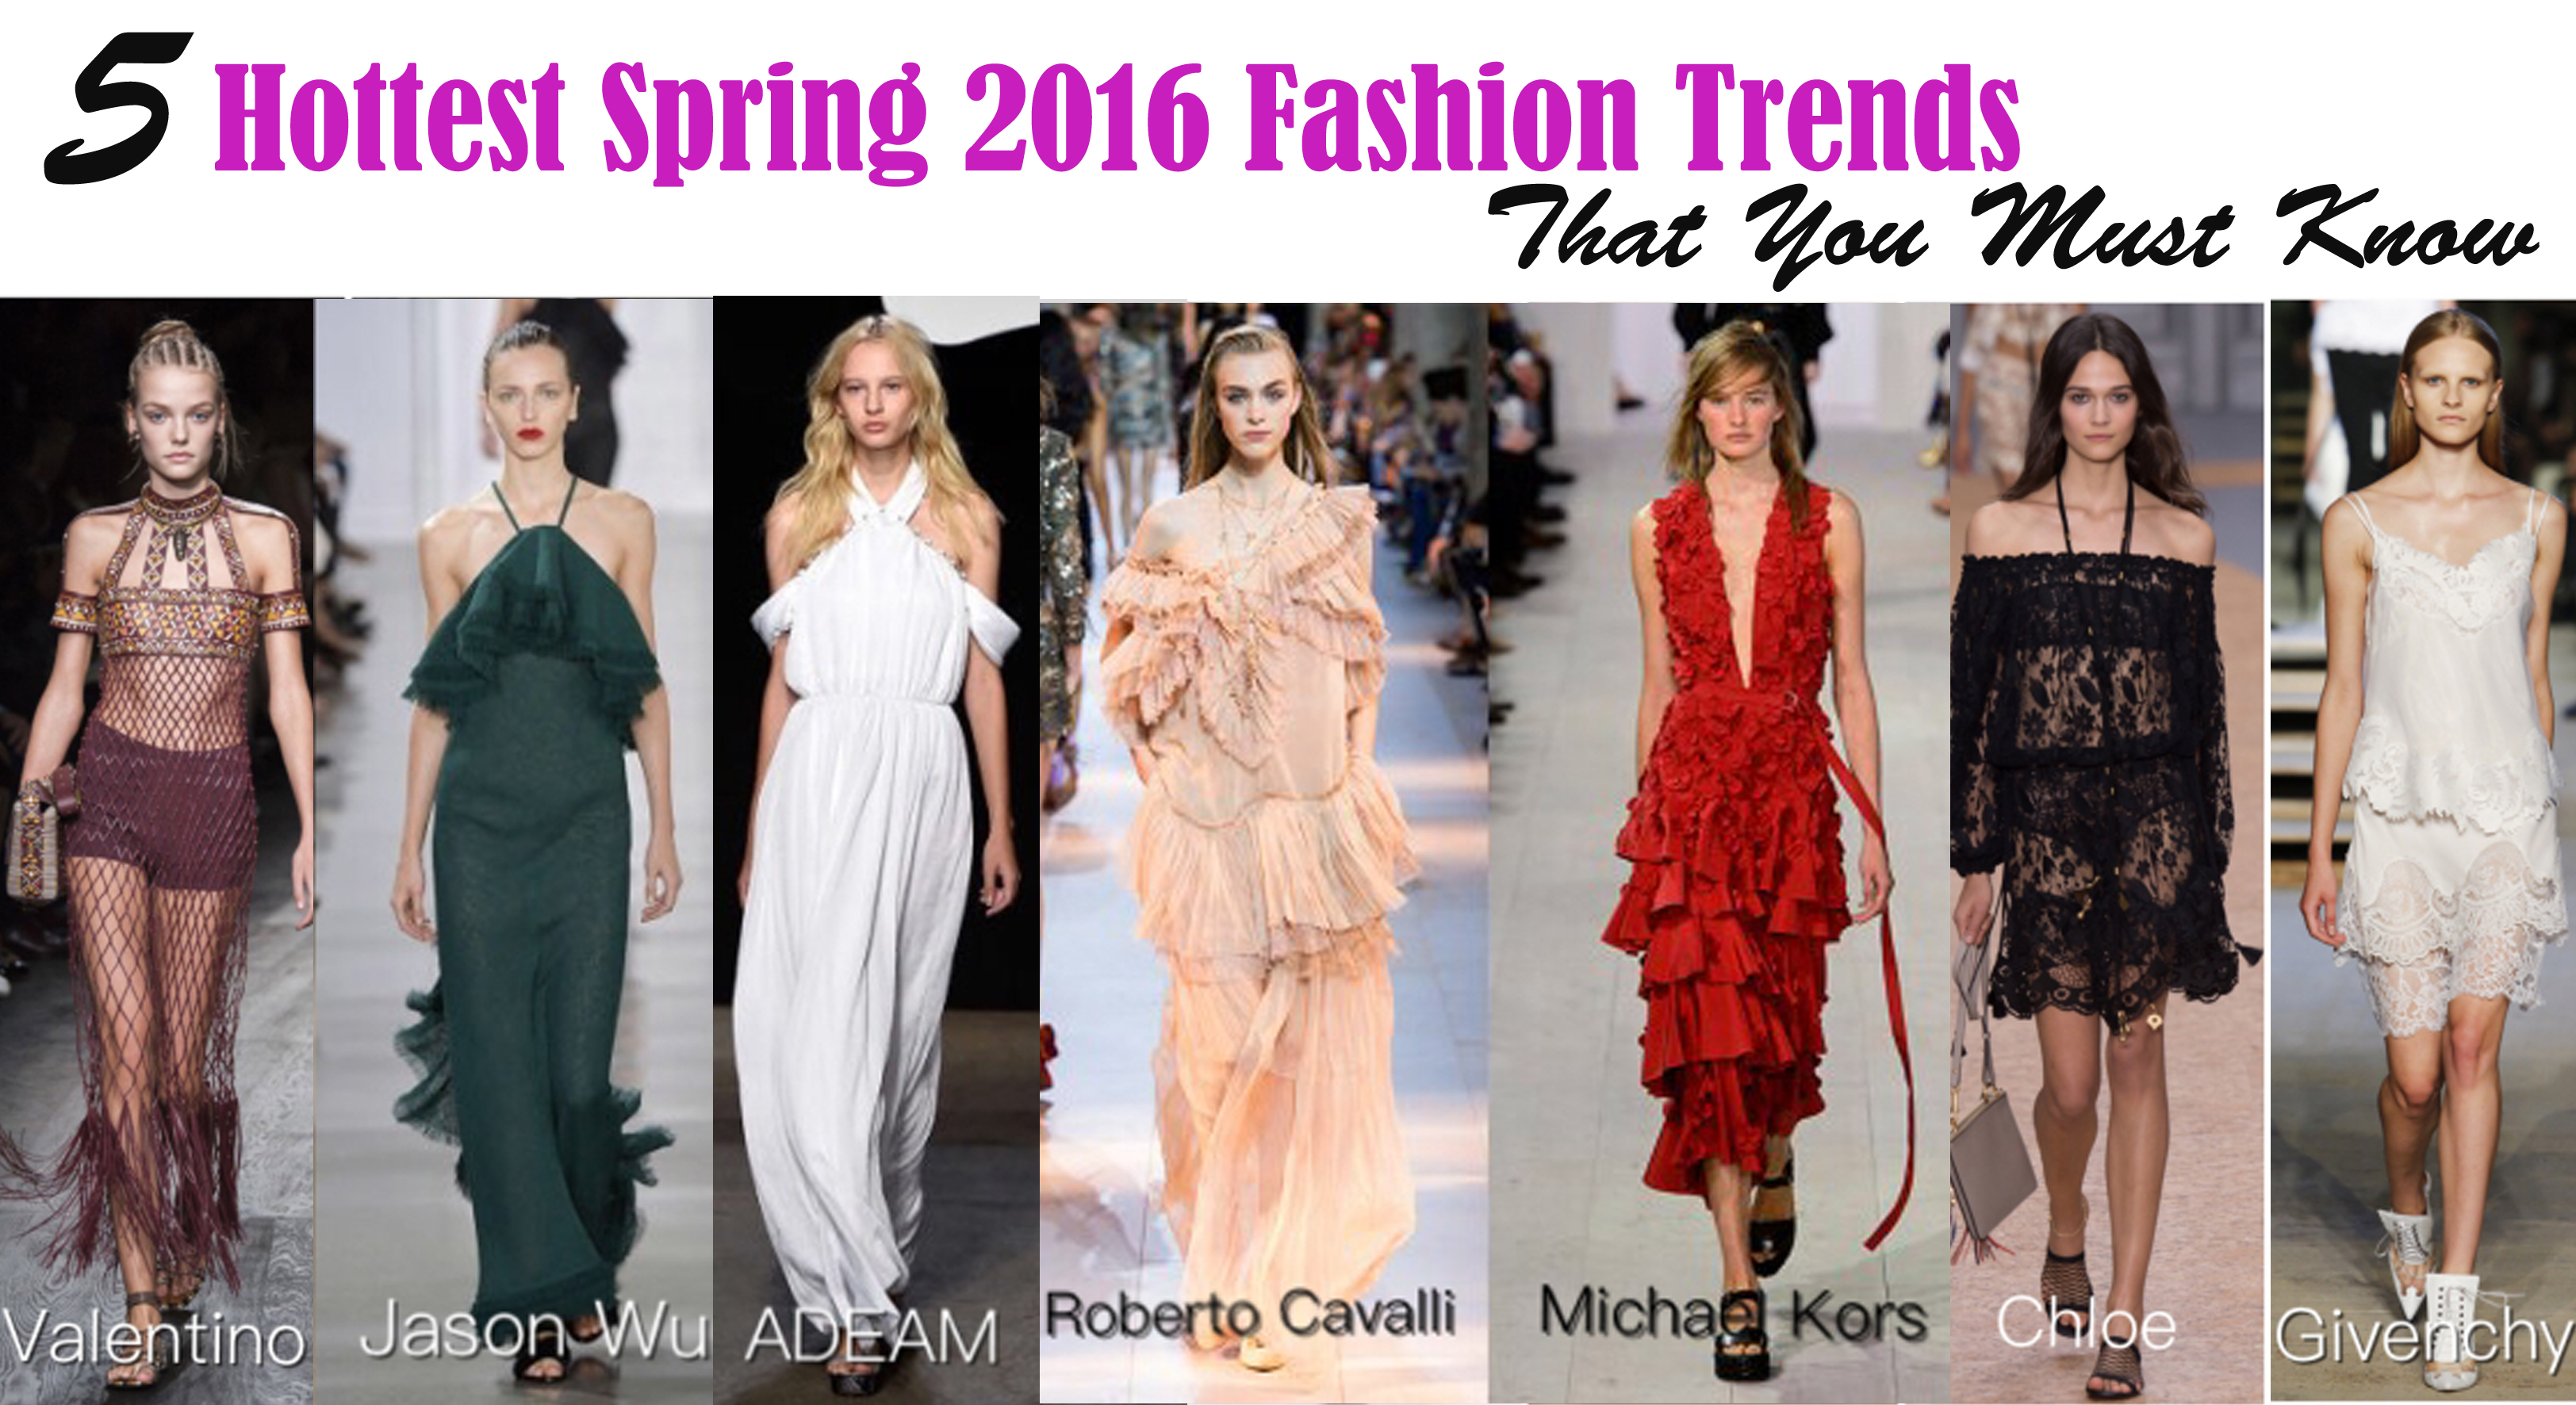 2016 Fashion Trends For Home Decor in addition Restaurant Interior Design Trends 2016 besides 2016 Interior Design Trends furthermore 2016 Spring Summer Trends moreover Home Decor Trends Spring Summer 2016. on spring 2016 furniture trends